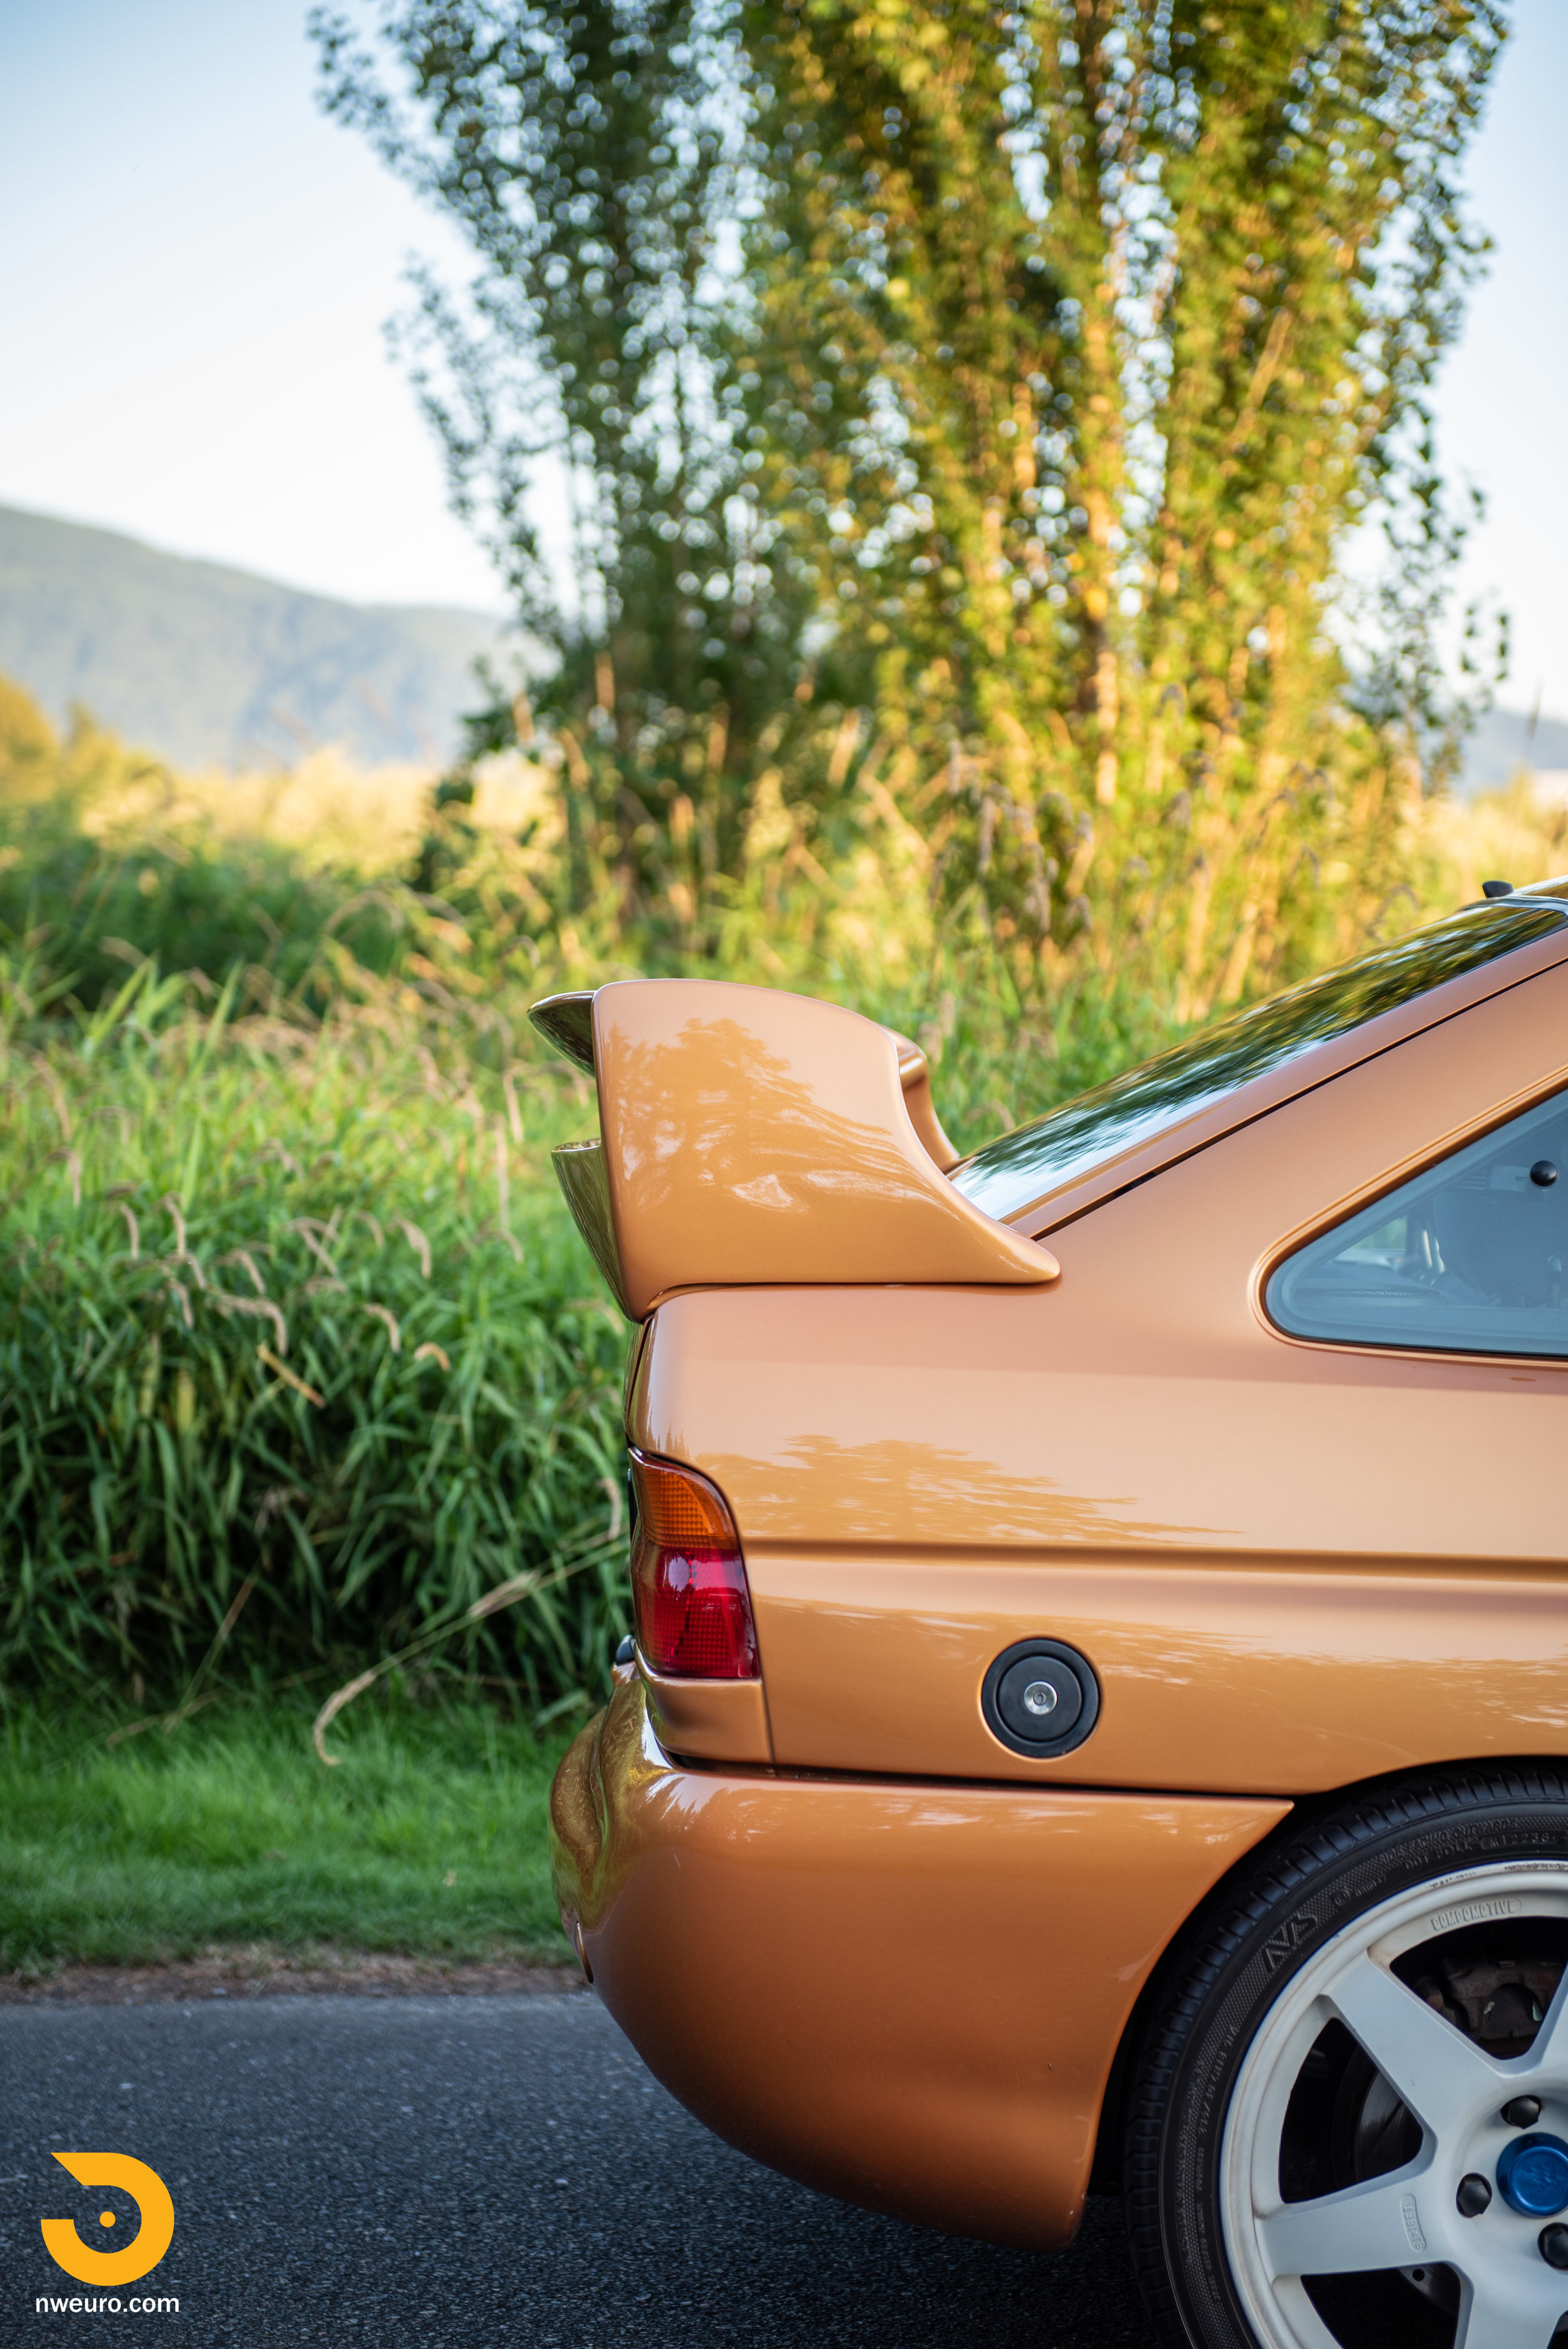 1995 Ford Escort Cosworth RS Gold-6.jpg